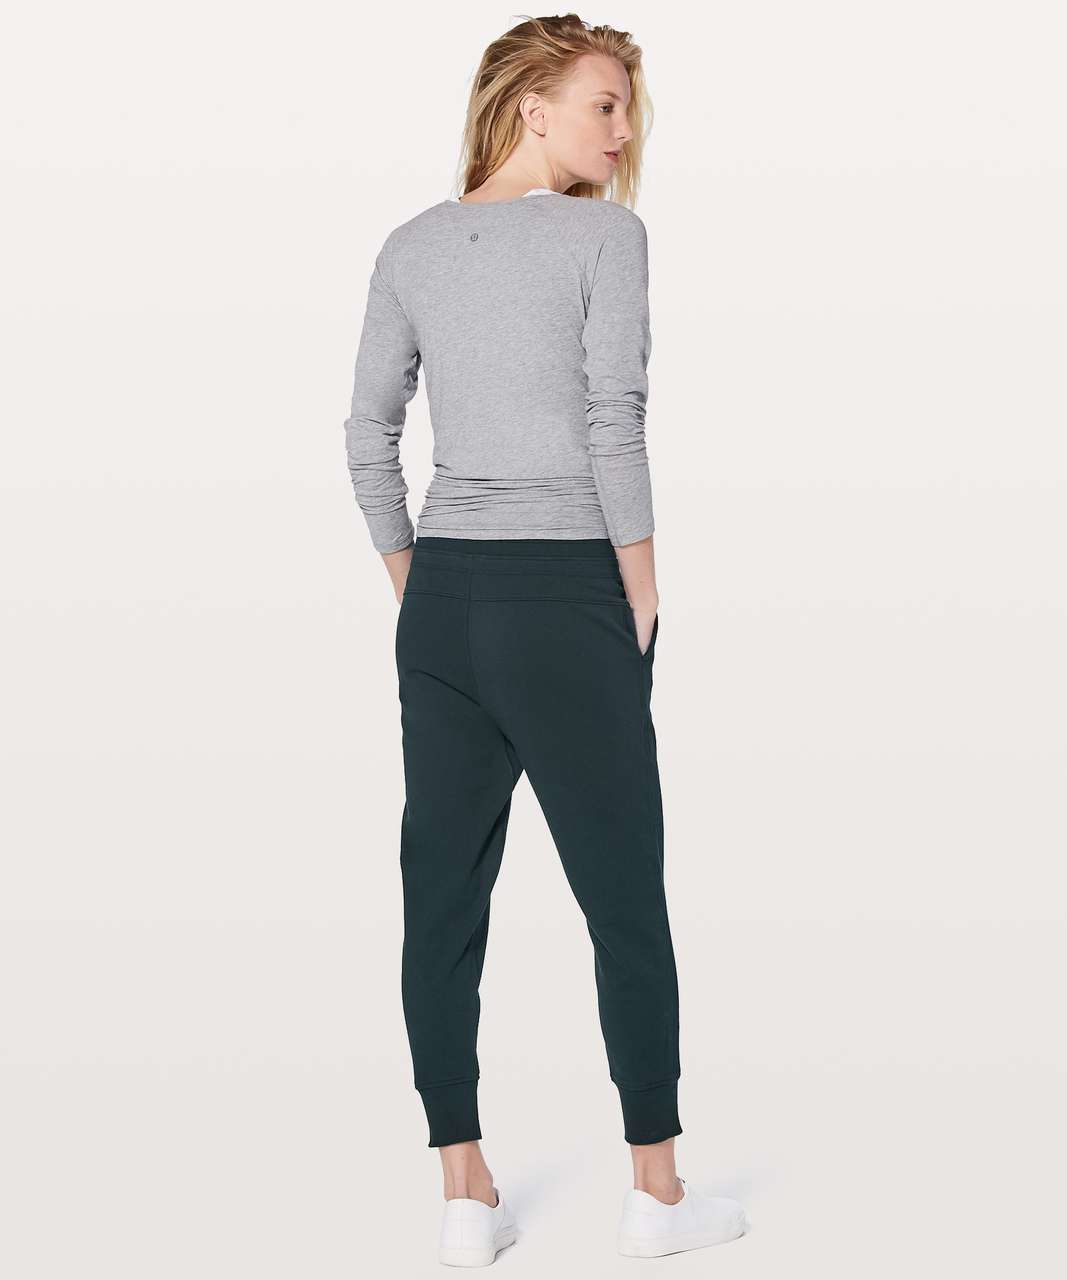 "Lululemon Press Pause Jogger II 25.5"" - Nocturnal Teal"